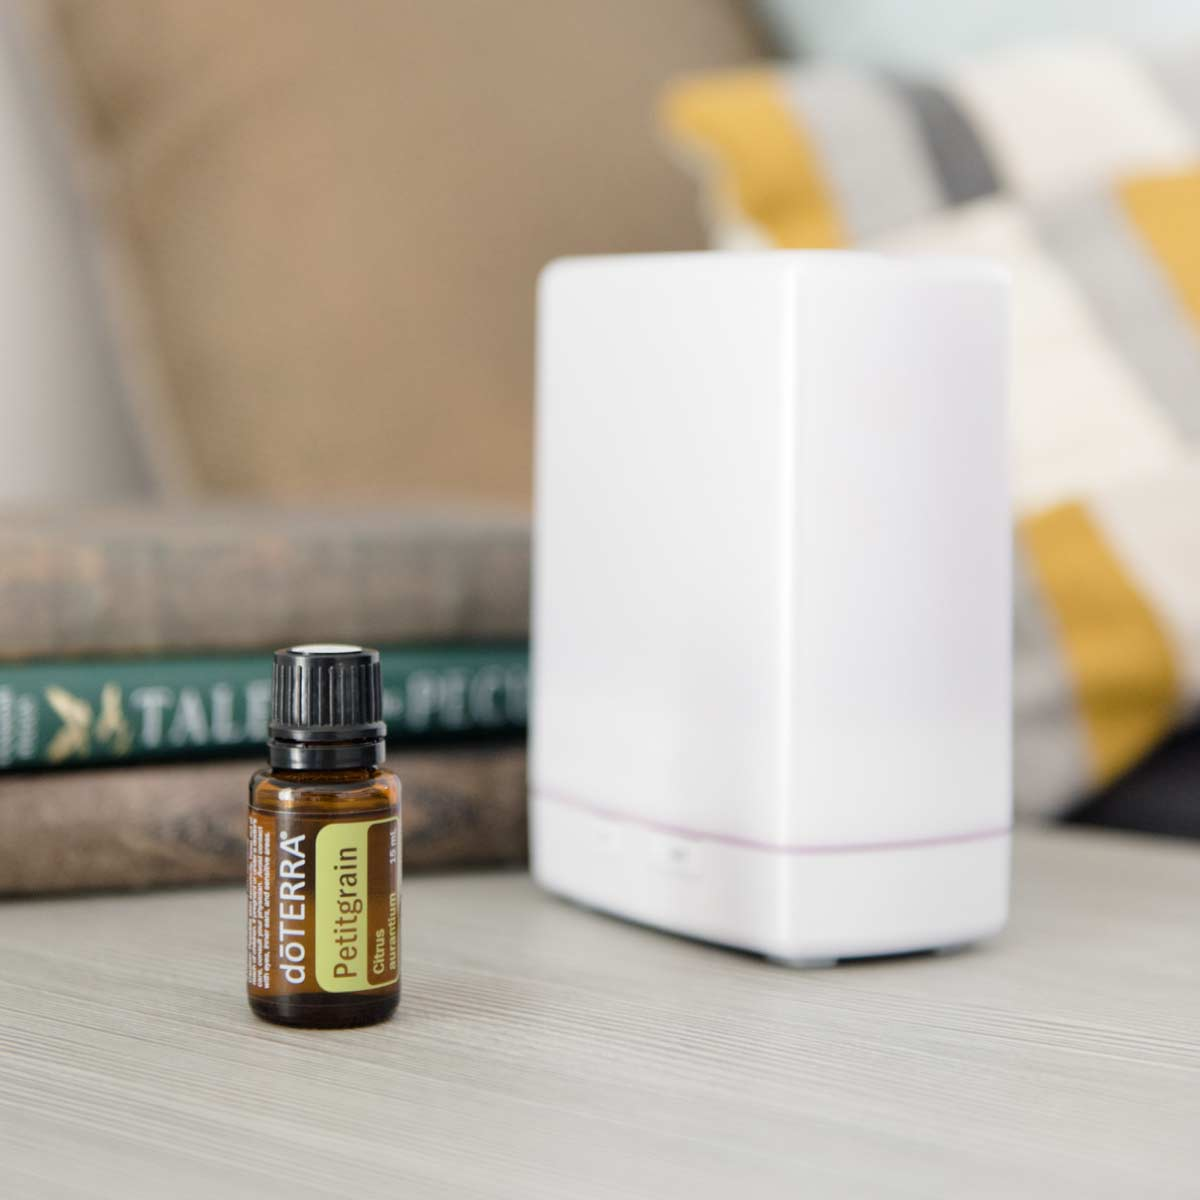 Bottle of Petitgrain essential oil next to essential oil diffuser and a stack of books. What are the benefits of Petitgrain essential oil? Petitgrain oil has benefits for relaxation, the immune system, and for sleep.